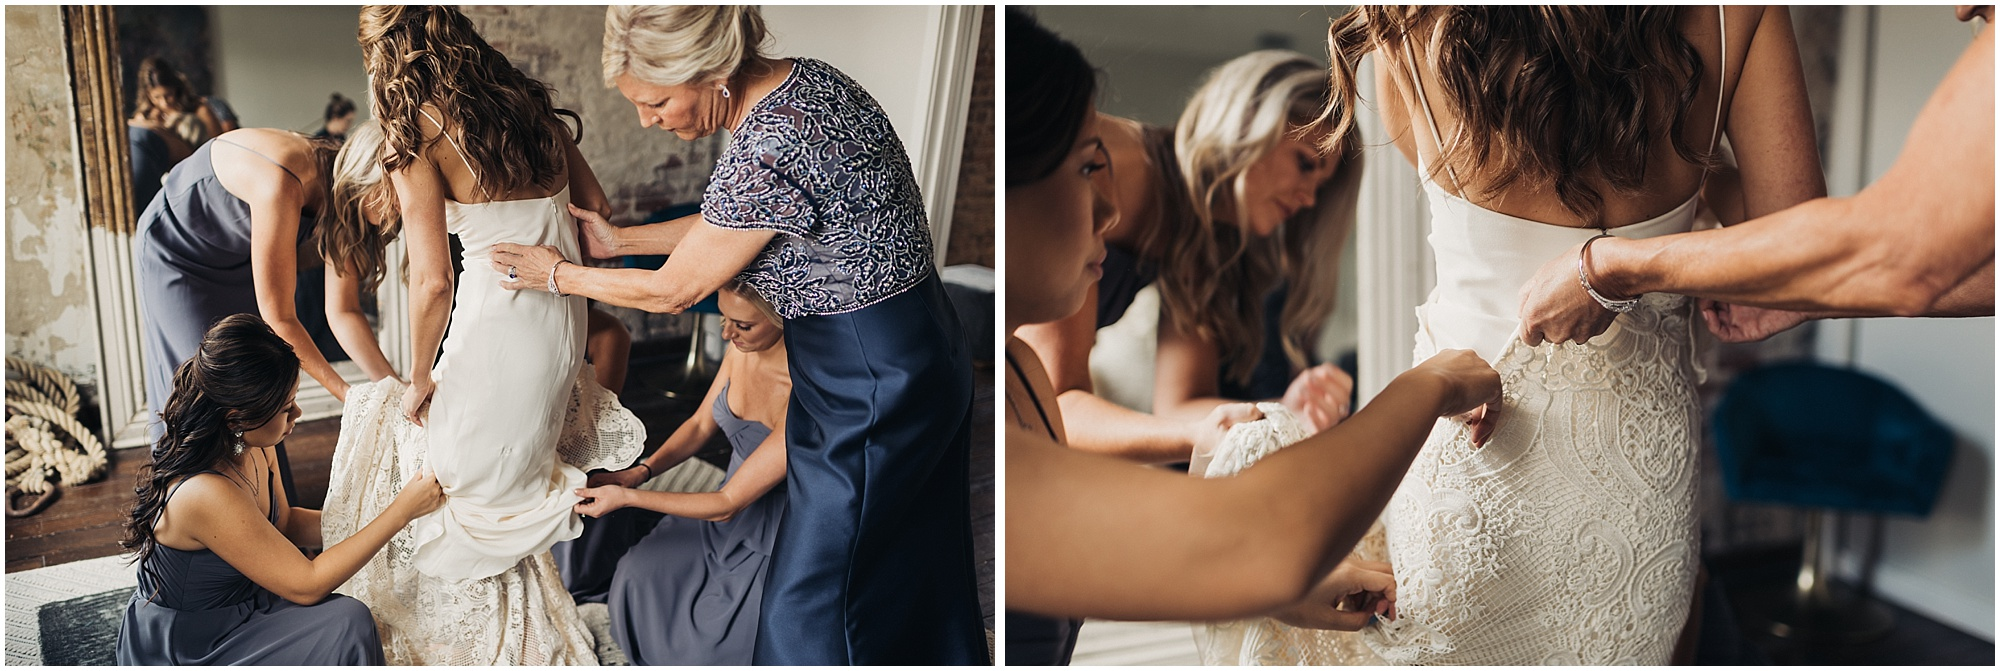 Putting on dress at the Cordelle